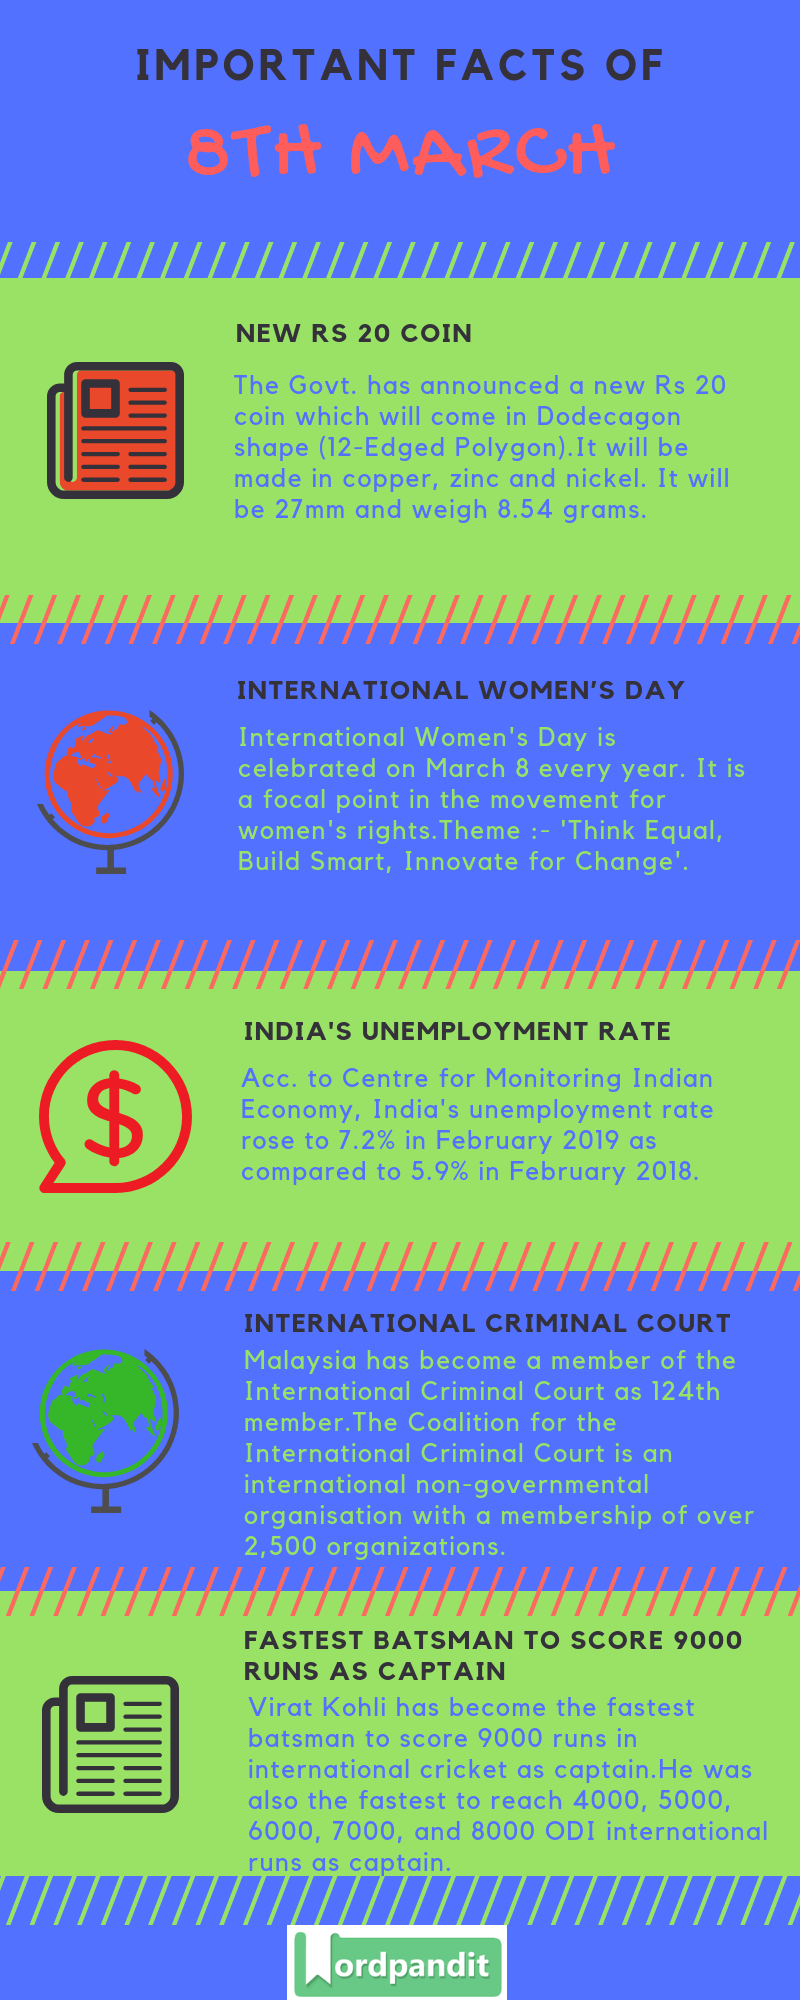 Daily Current Affairs 8 March 2019 Current Affairs Quiz 8 March 2019 Current Affairs Infographic